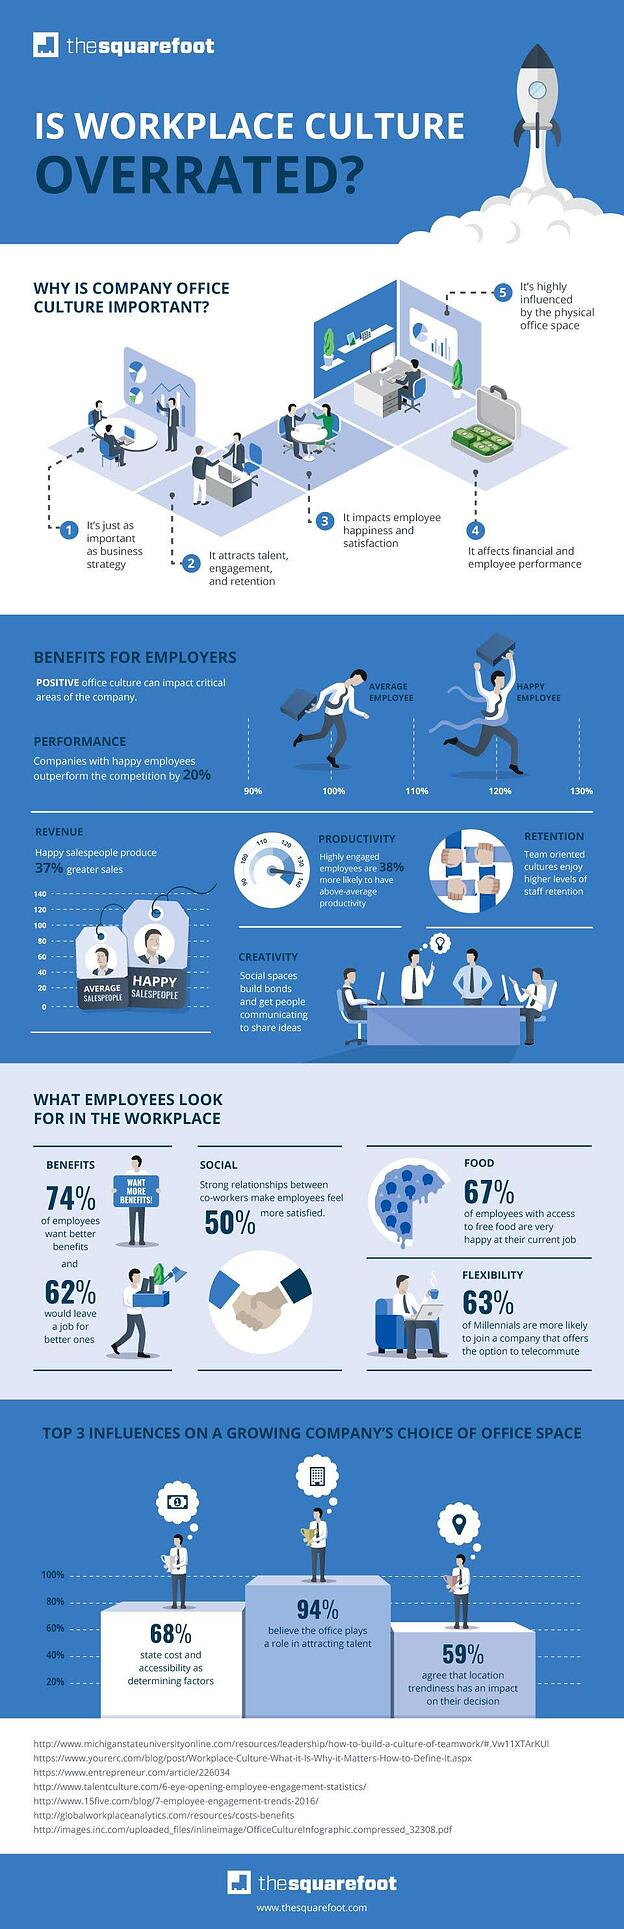 workplace culture infographic